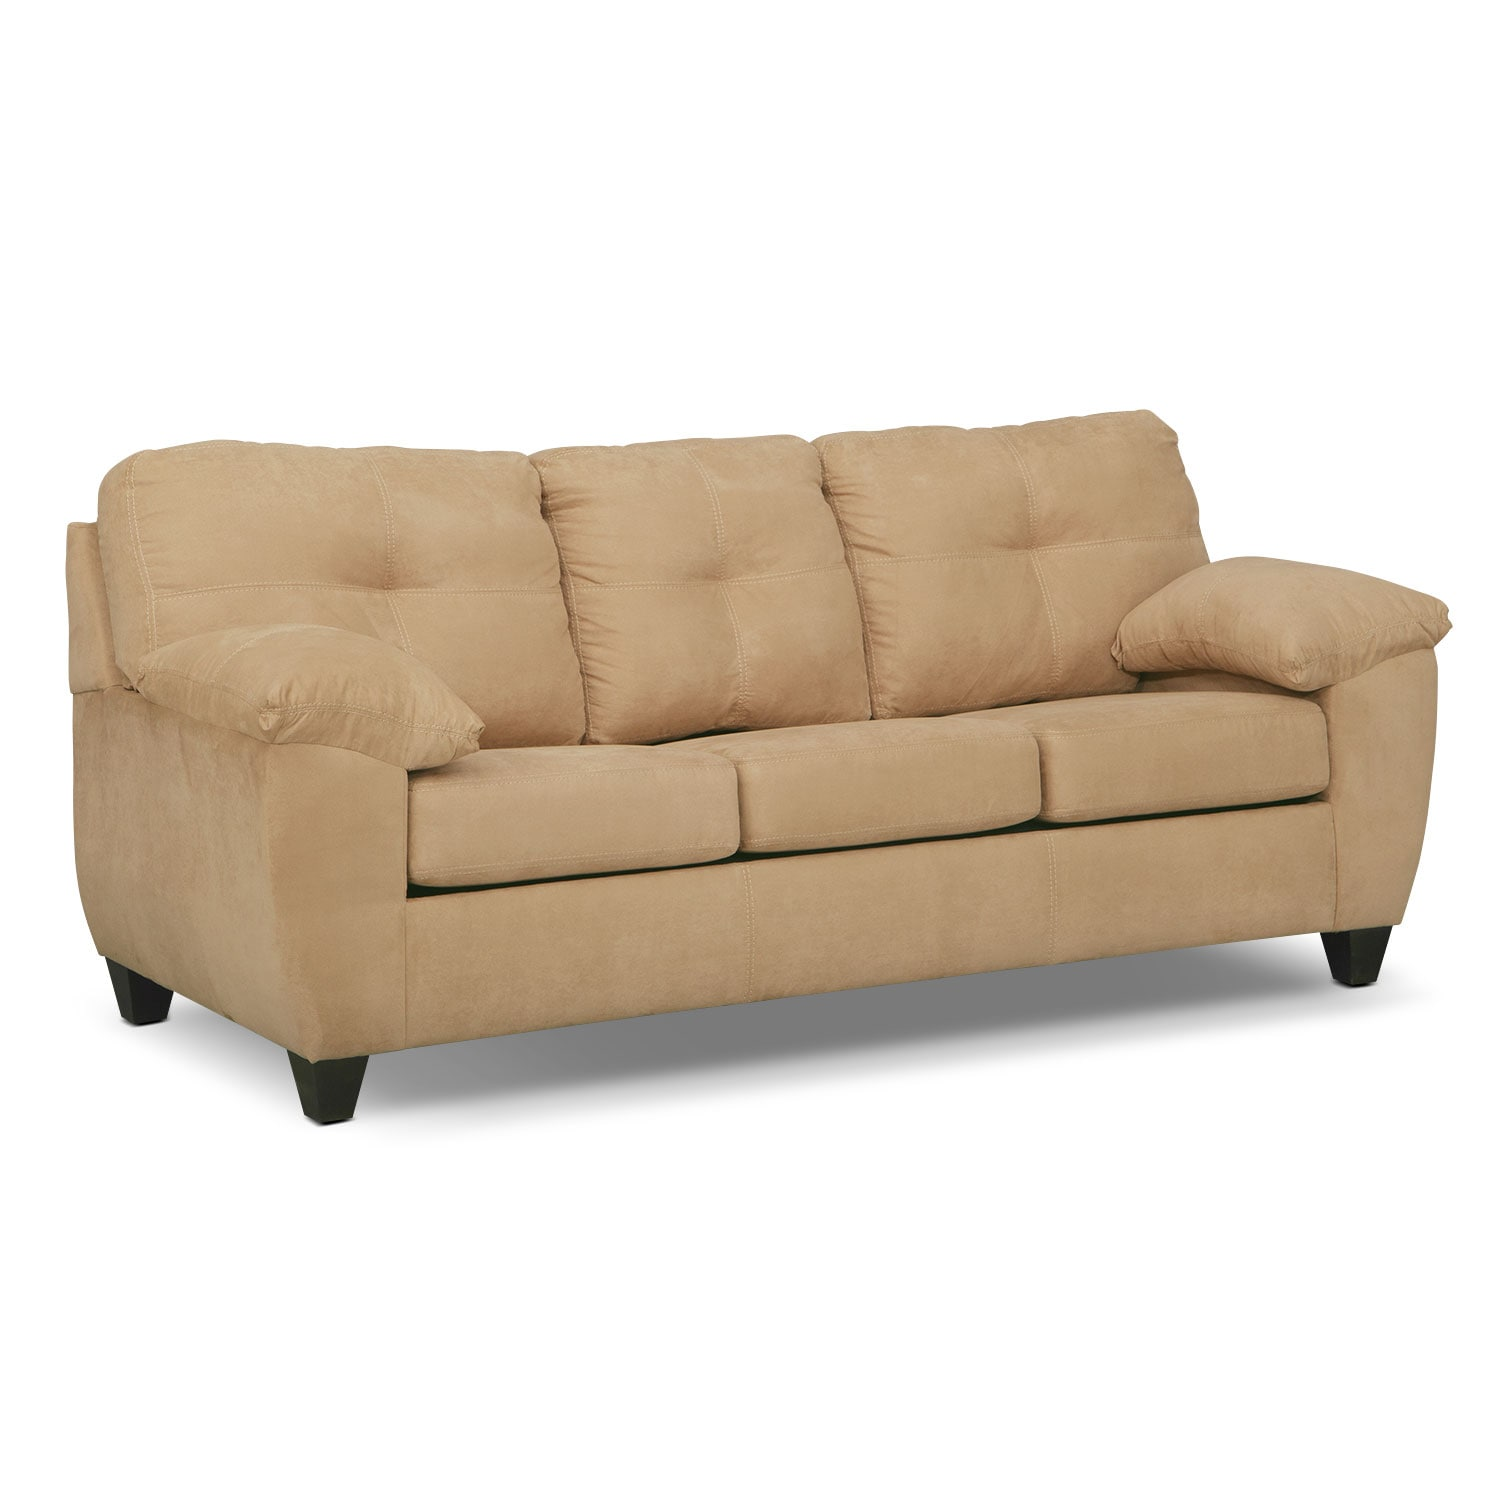 Ricardo Queen Memory Foam Sleeper Sofa Camel